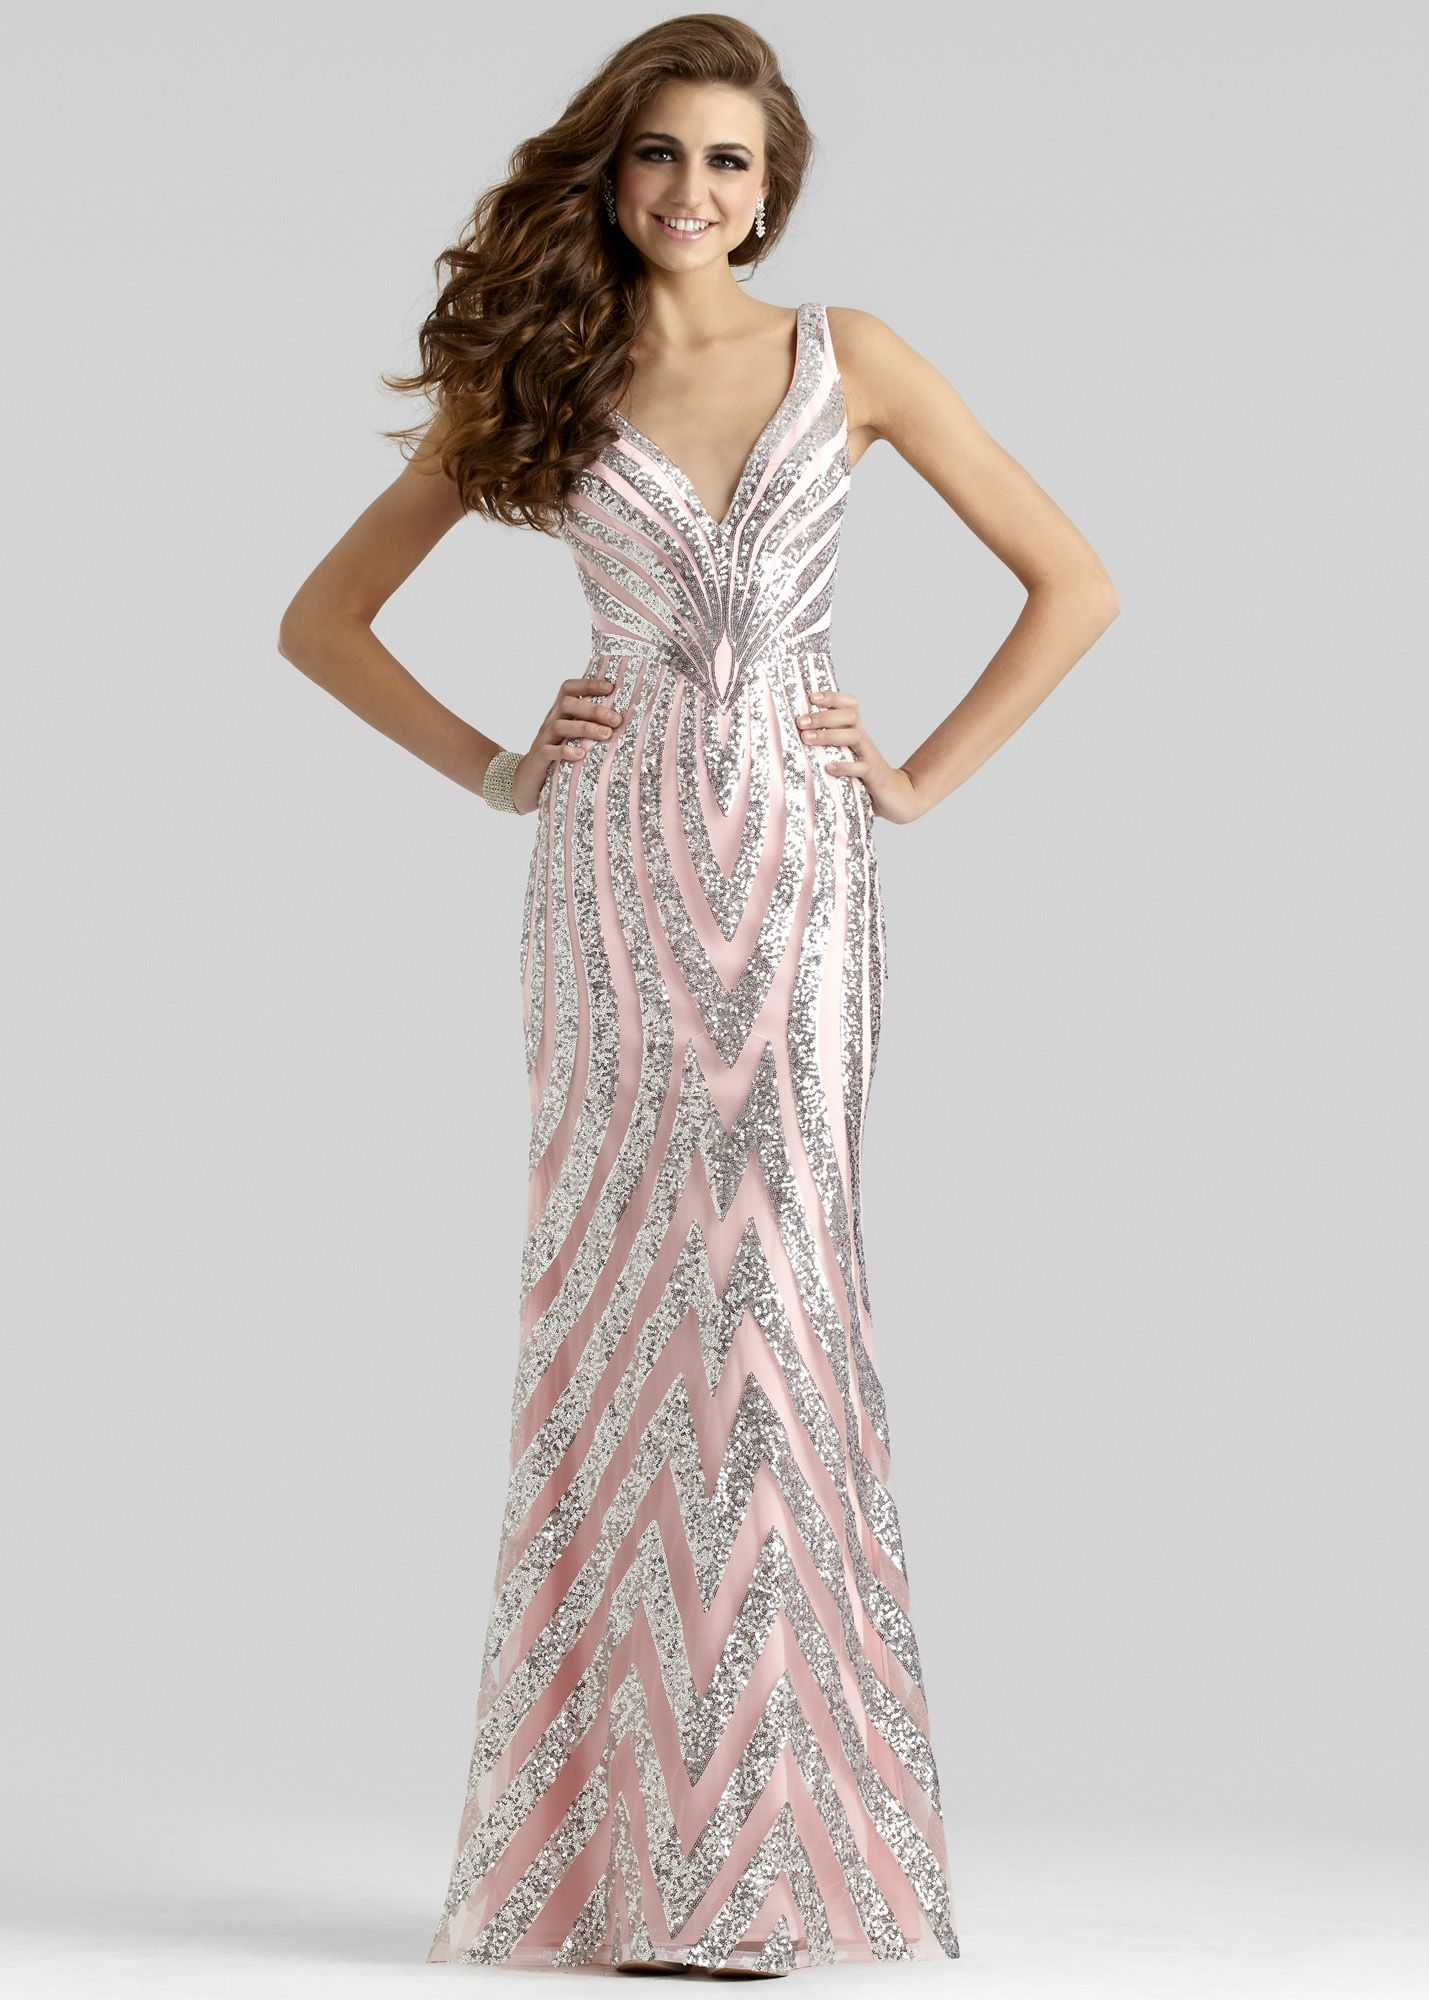 Clarisse pinksilver sequin vneck prom dress stuff to buy